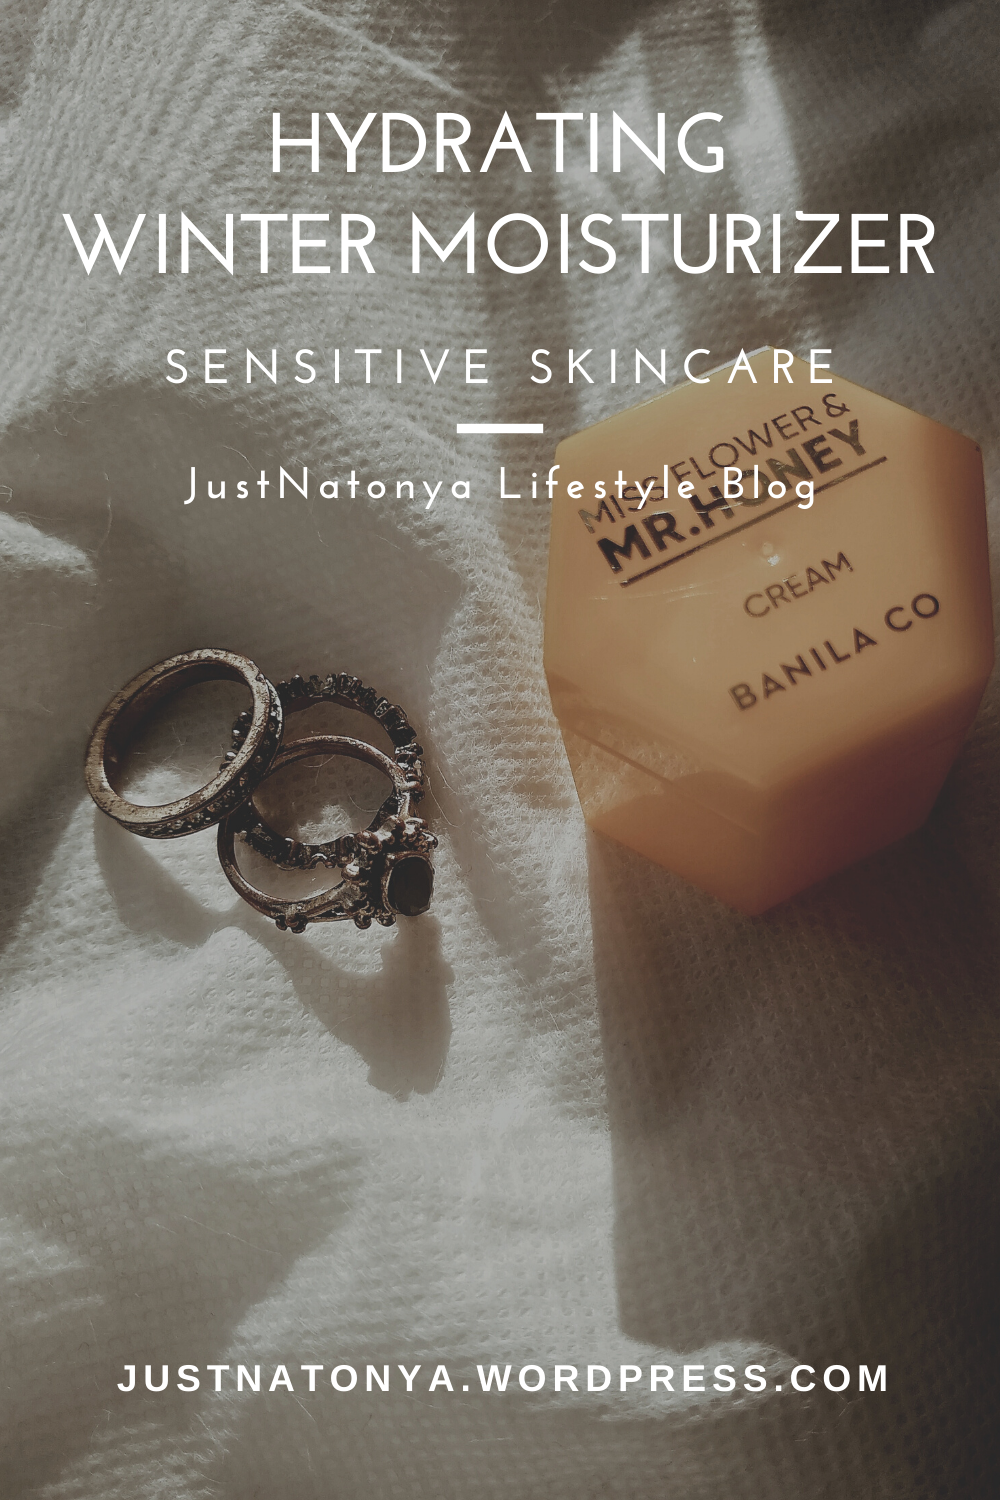 Moisturizer that Keeps Sensitive Skin from Drying Out in the Winter